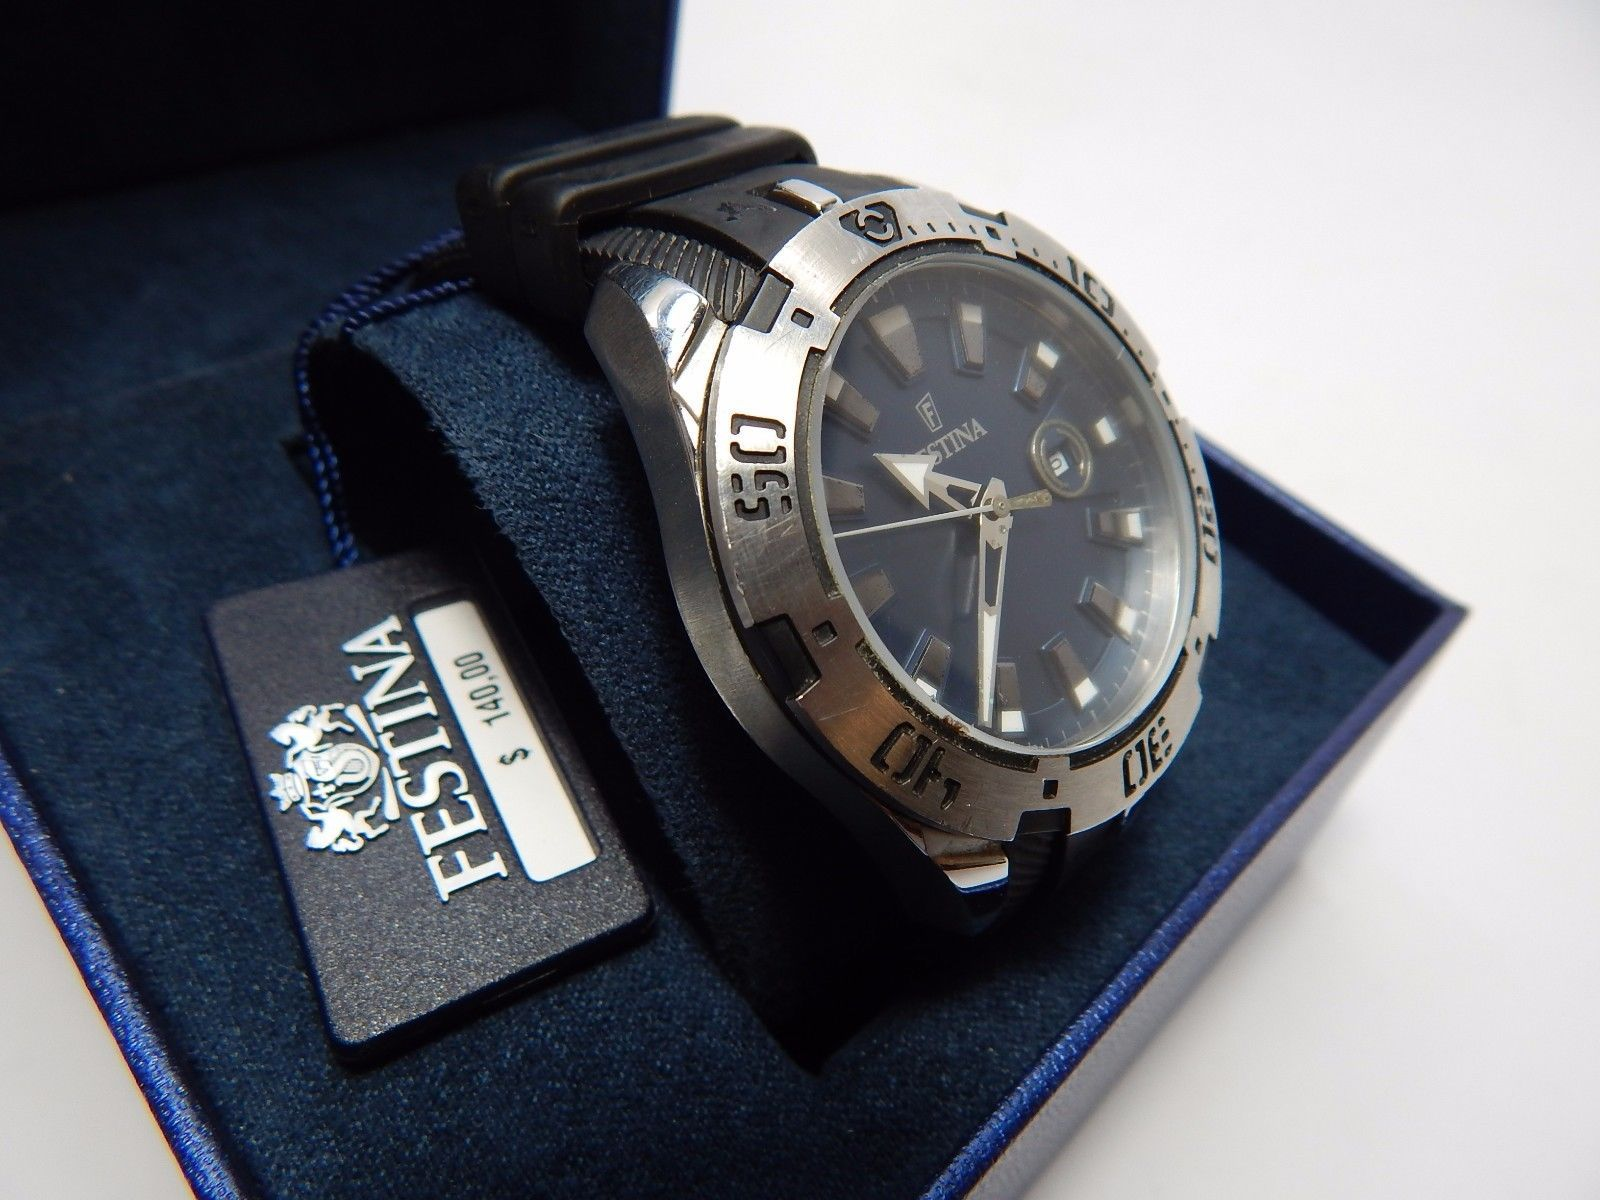 Festina Men's Watch - F16671-2 $140.00 EUC